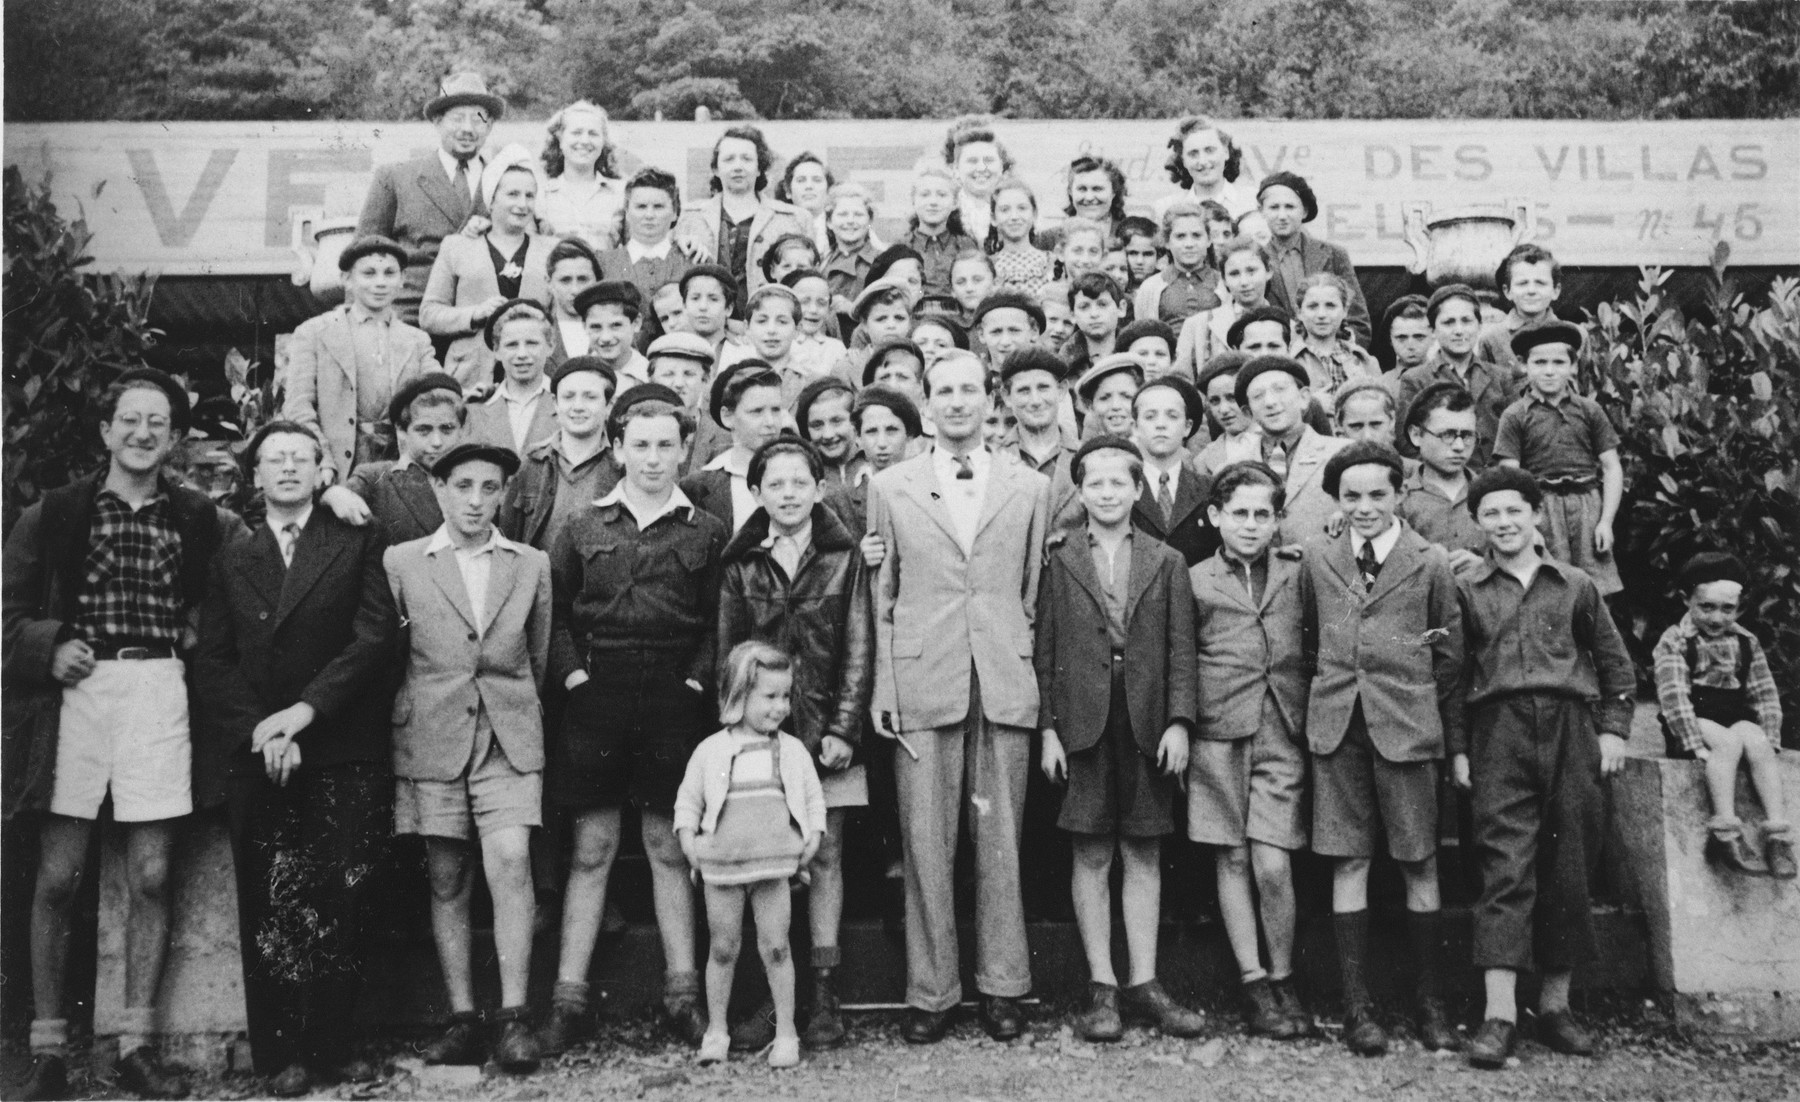 Group portrait of children and staff in Amseremme, Belgium.  Among those pictured are Jonas Tiefenbrunner (standing at the top left), Ruth Tiefenbrunner (below him to his right), Mrs. Bornstein (to her right), Arnold Peterbreund (slightly below, between Mrs. Tiefenbrunner and Mrs. Bornstein),Myriam Censer (one of the counselors, next to Jonas Tiefenbrunner), Bronia Singer and Necha Lubinsky (both top center), Marcel Weinberg (third row, far right), Moniek Amsterdam (second row, far right), Harry Wattenberg (third row, third from left), Grossman (first row, third from left), Marcel Stammler (first row, fourth from left), Sam Kisznitser (first row, fifth from left) and Judith Tiefenbrunner in the very front with blond hair.